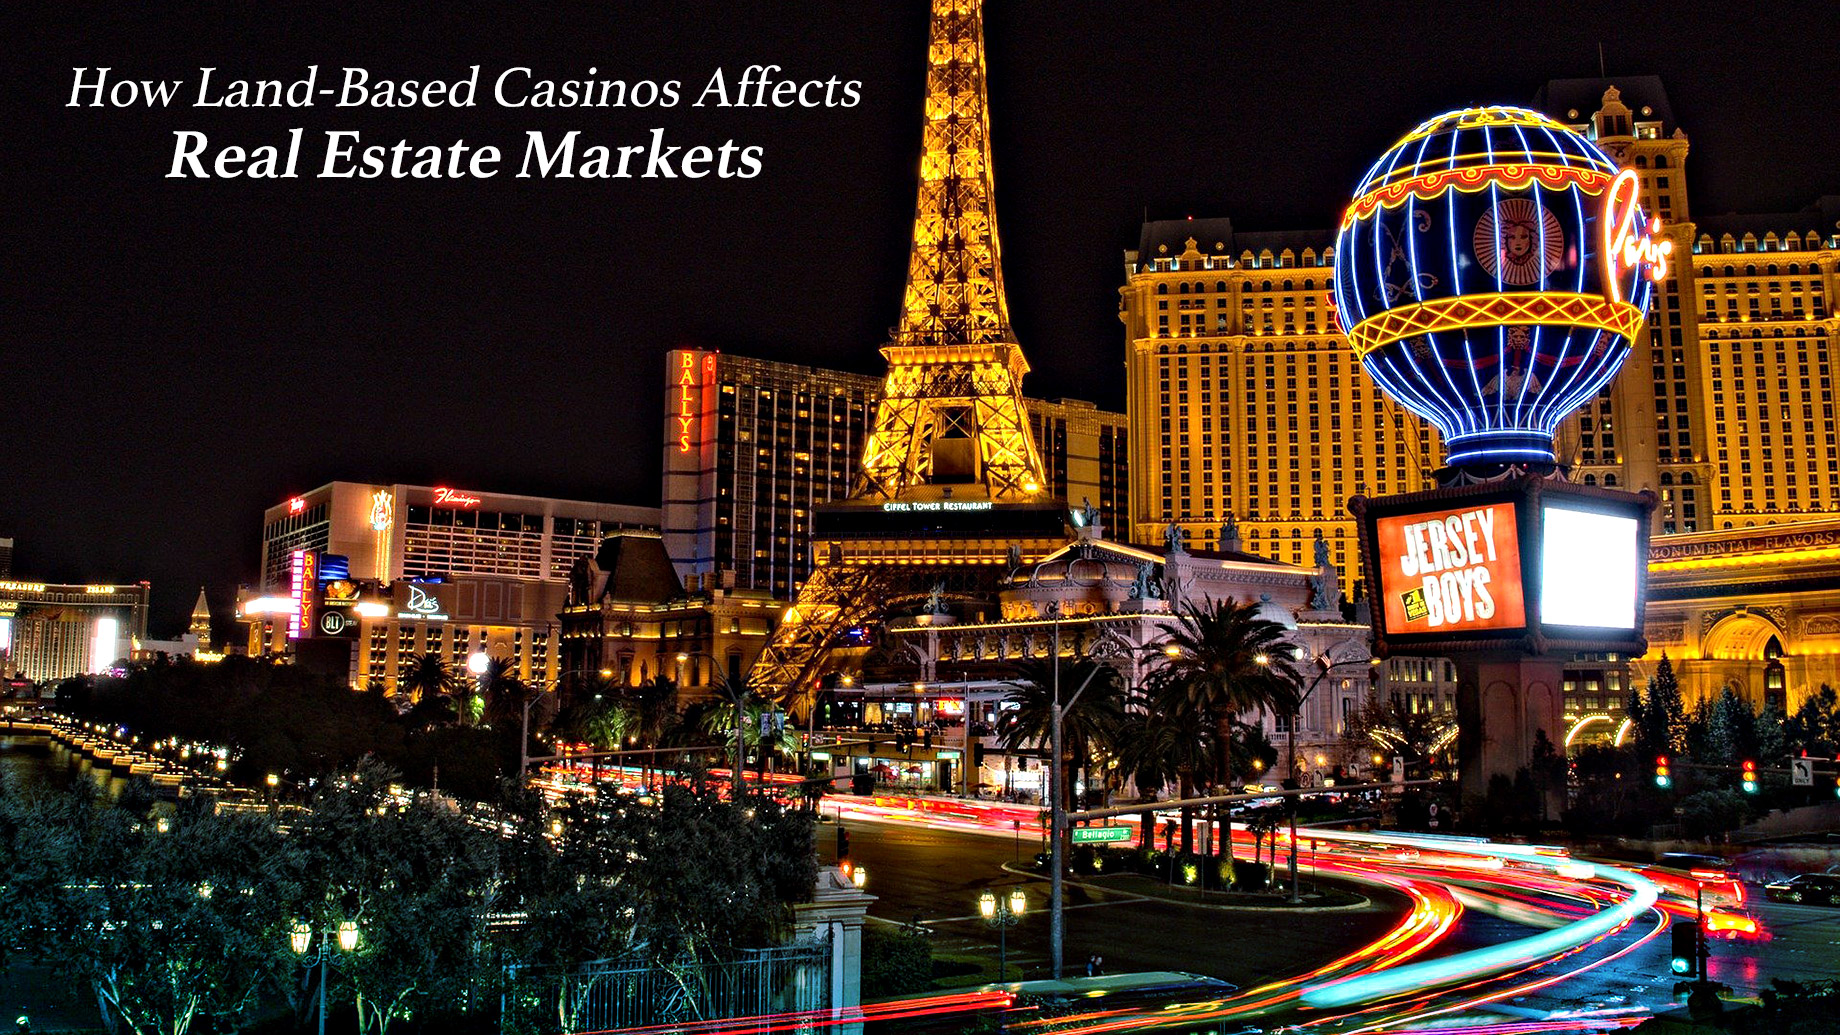 How Land-Based Casinos Affects Real Estate Markets